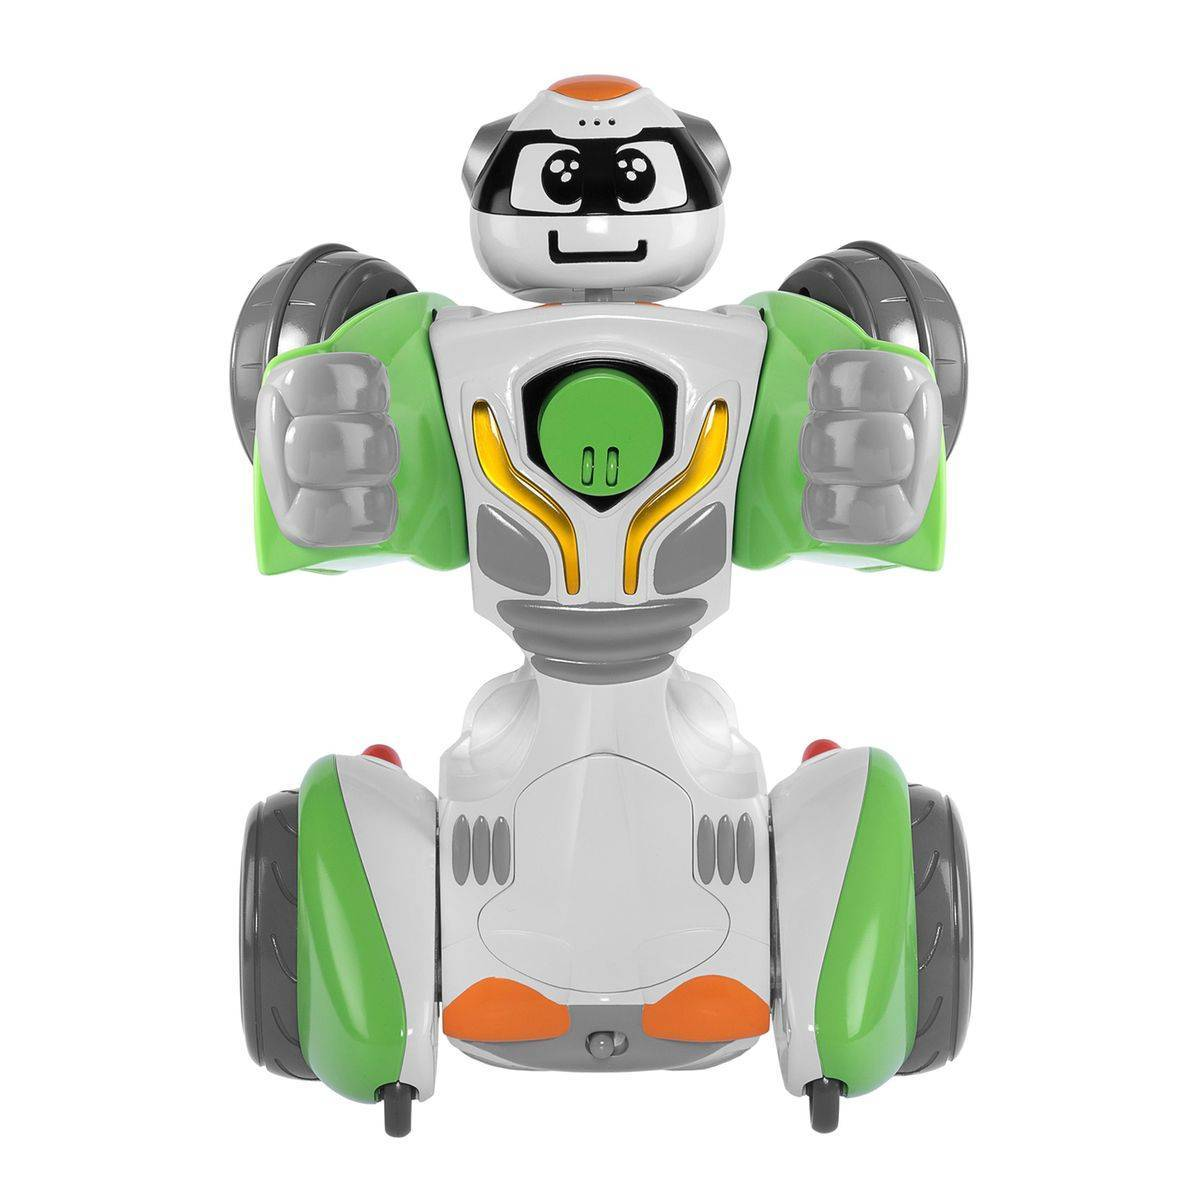 Chicco RC TRANSFORMABLE ROBOT - CHICCO